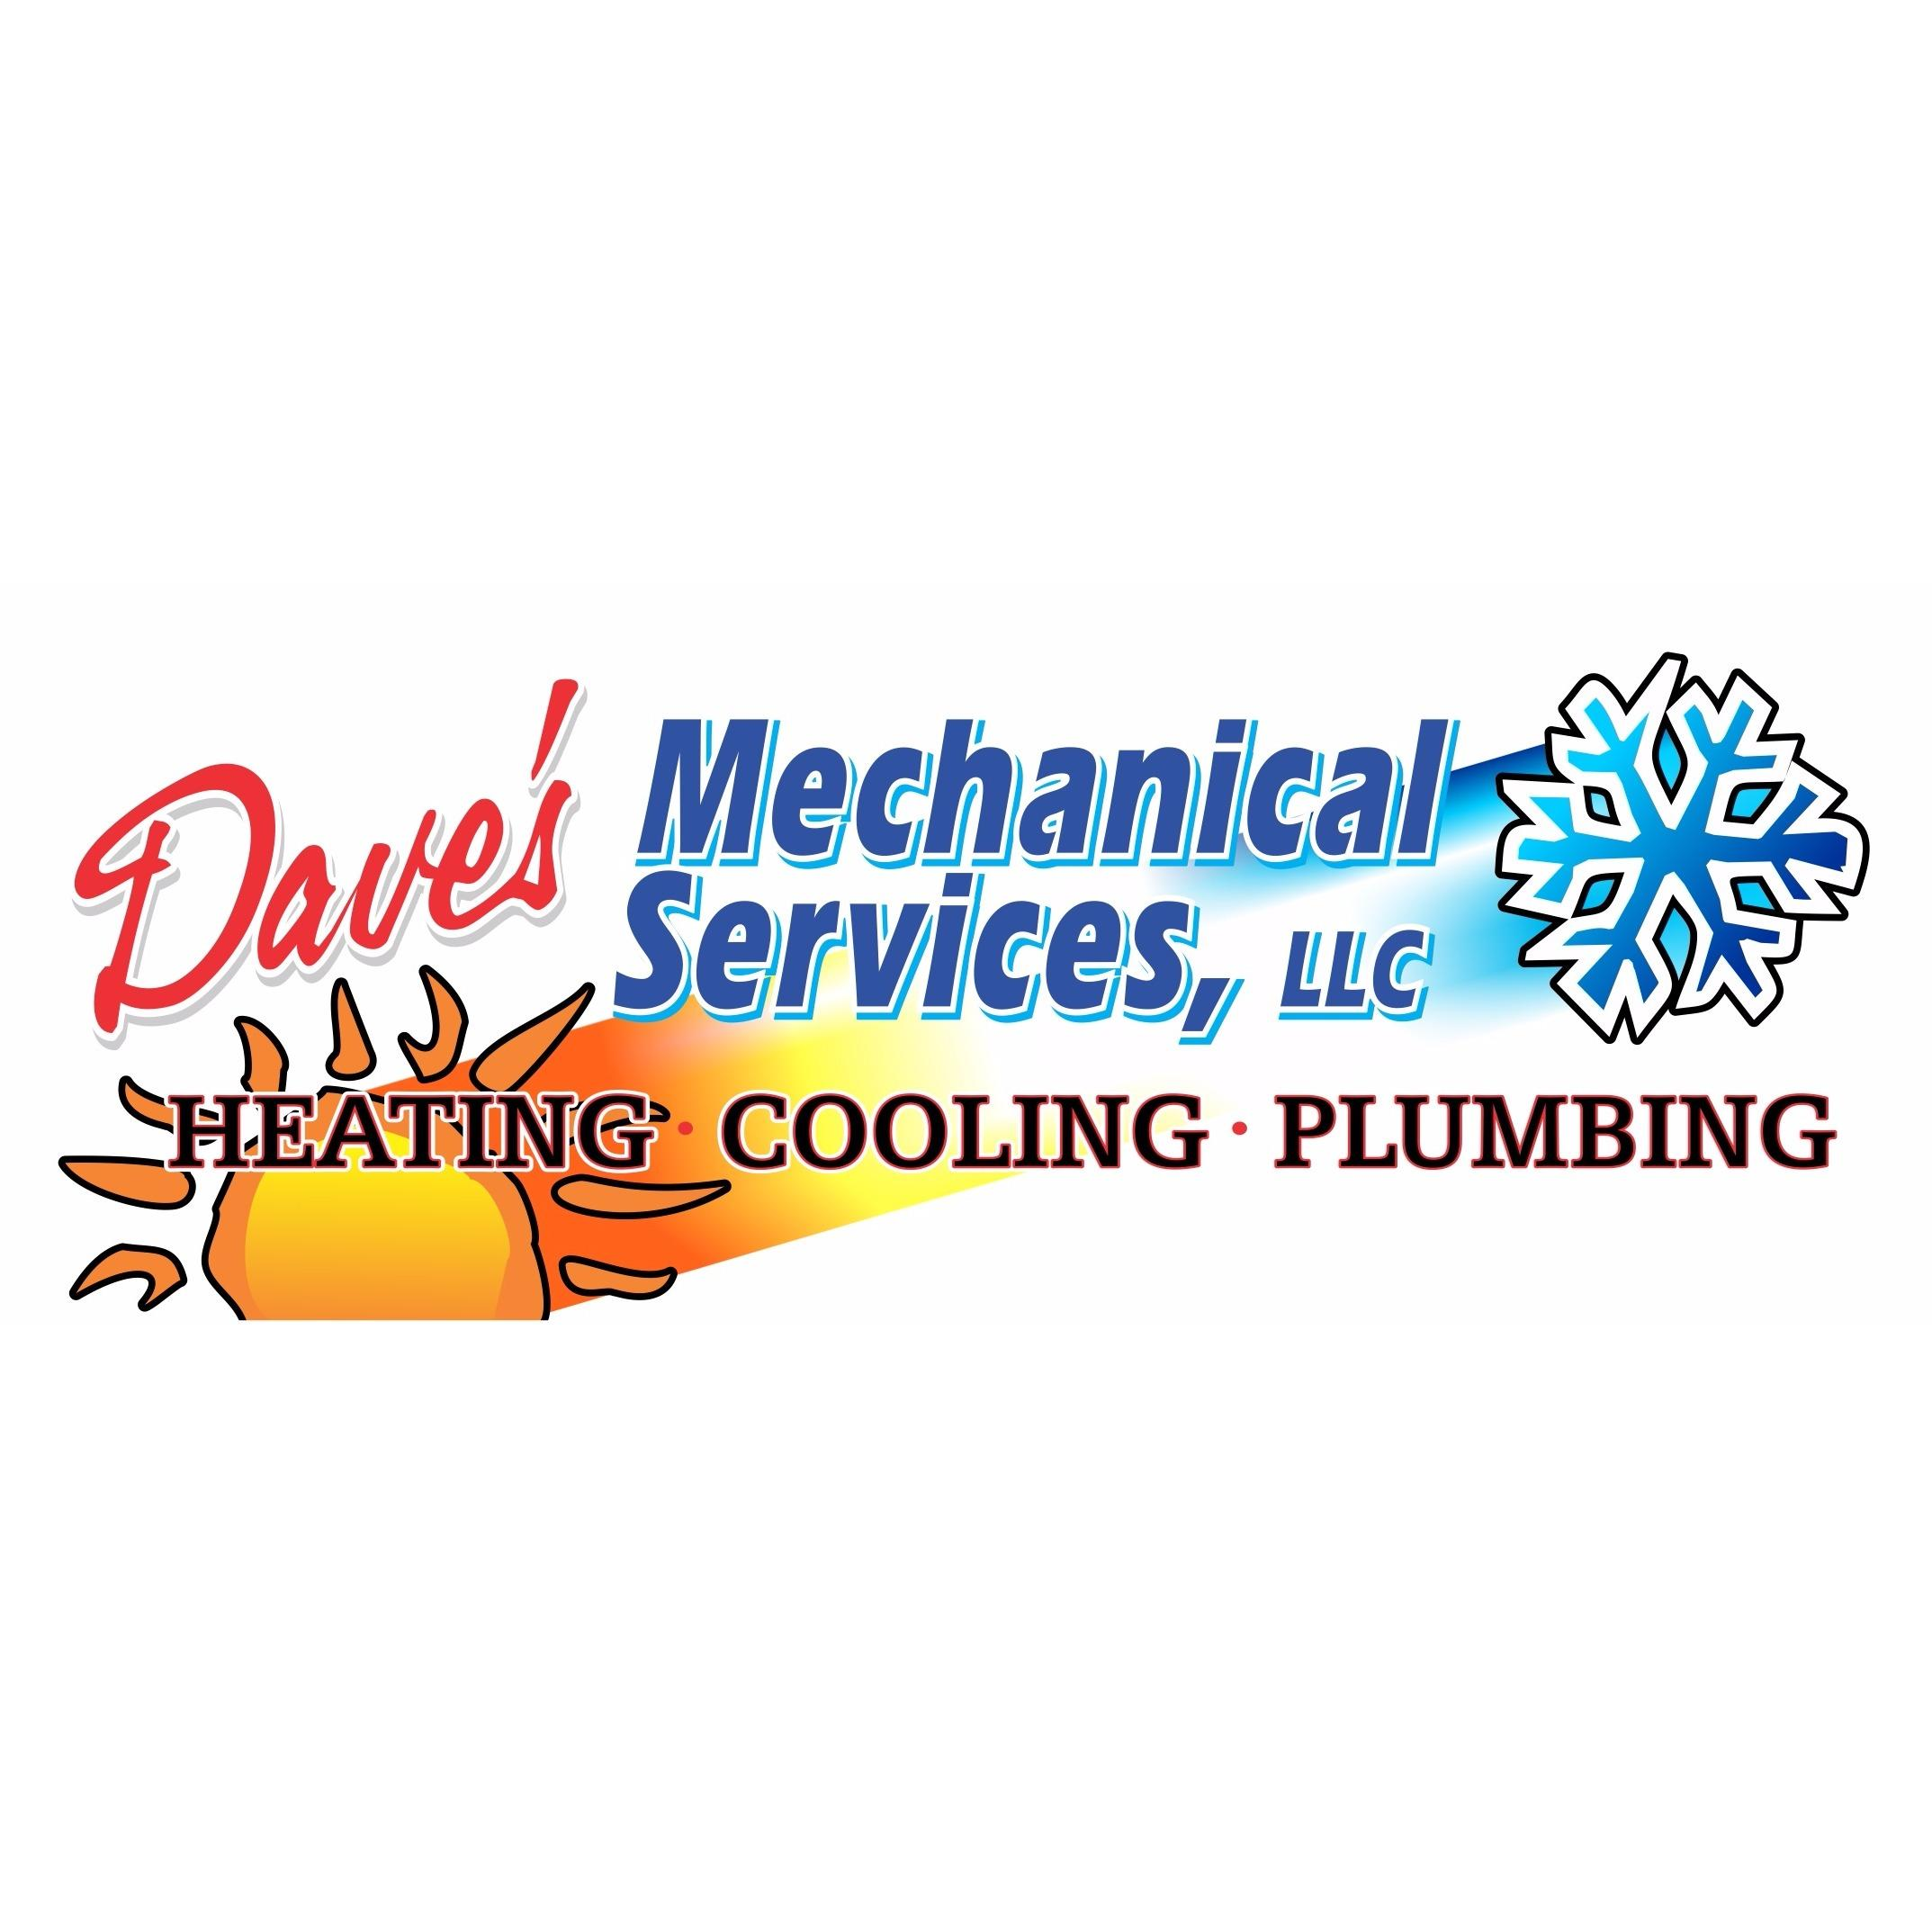 Dave's Mechanical Services, LLC